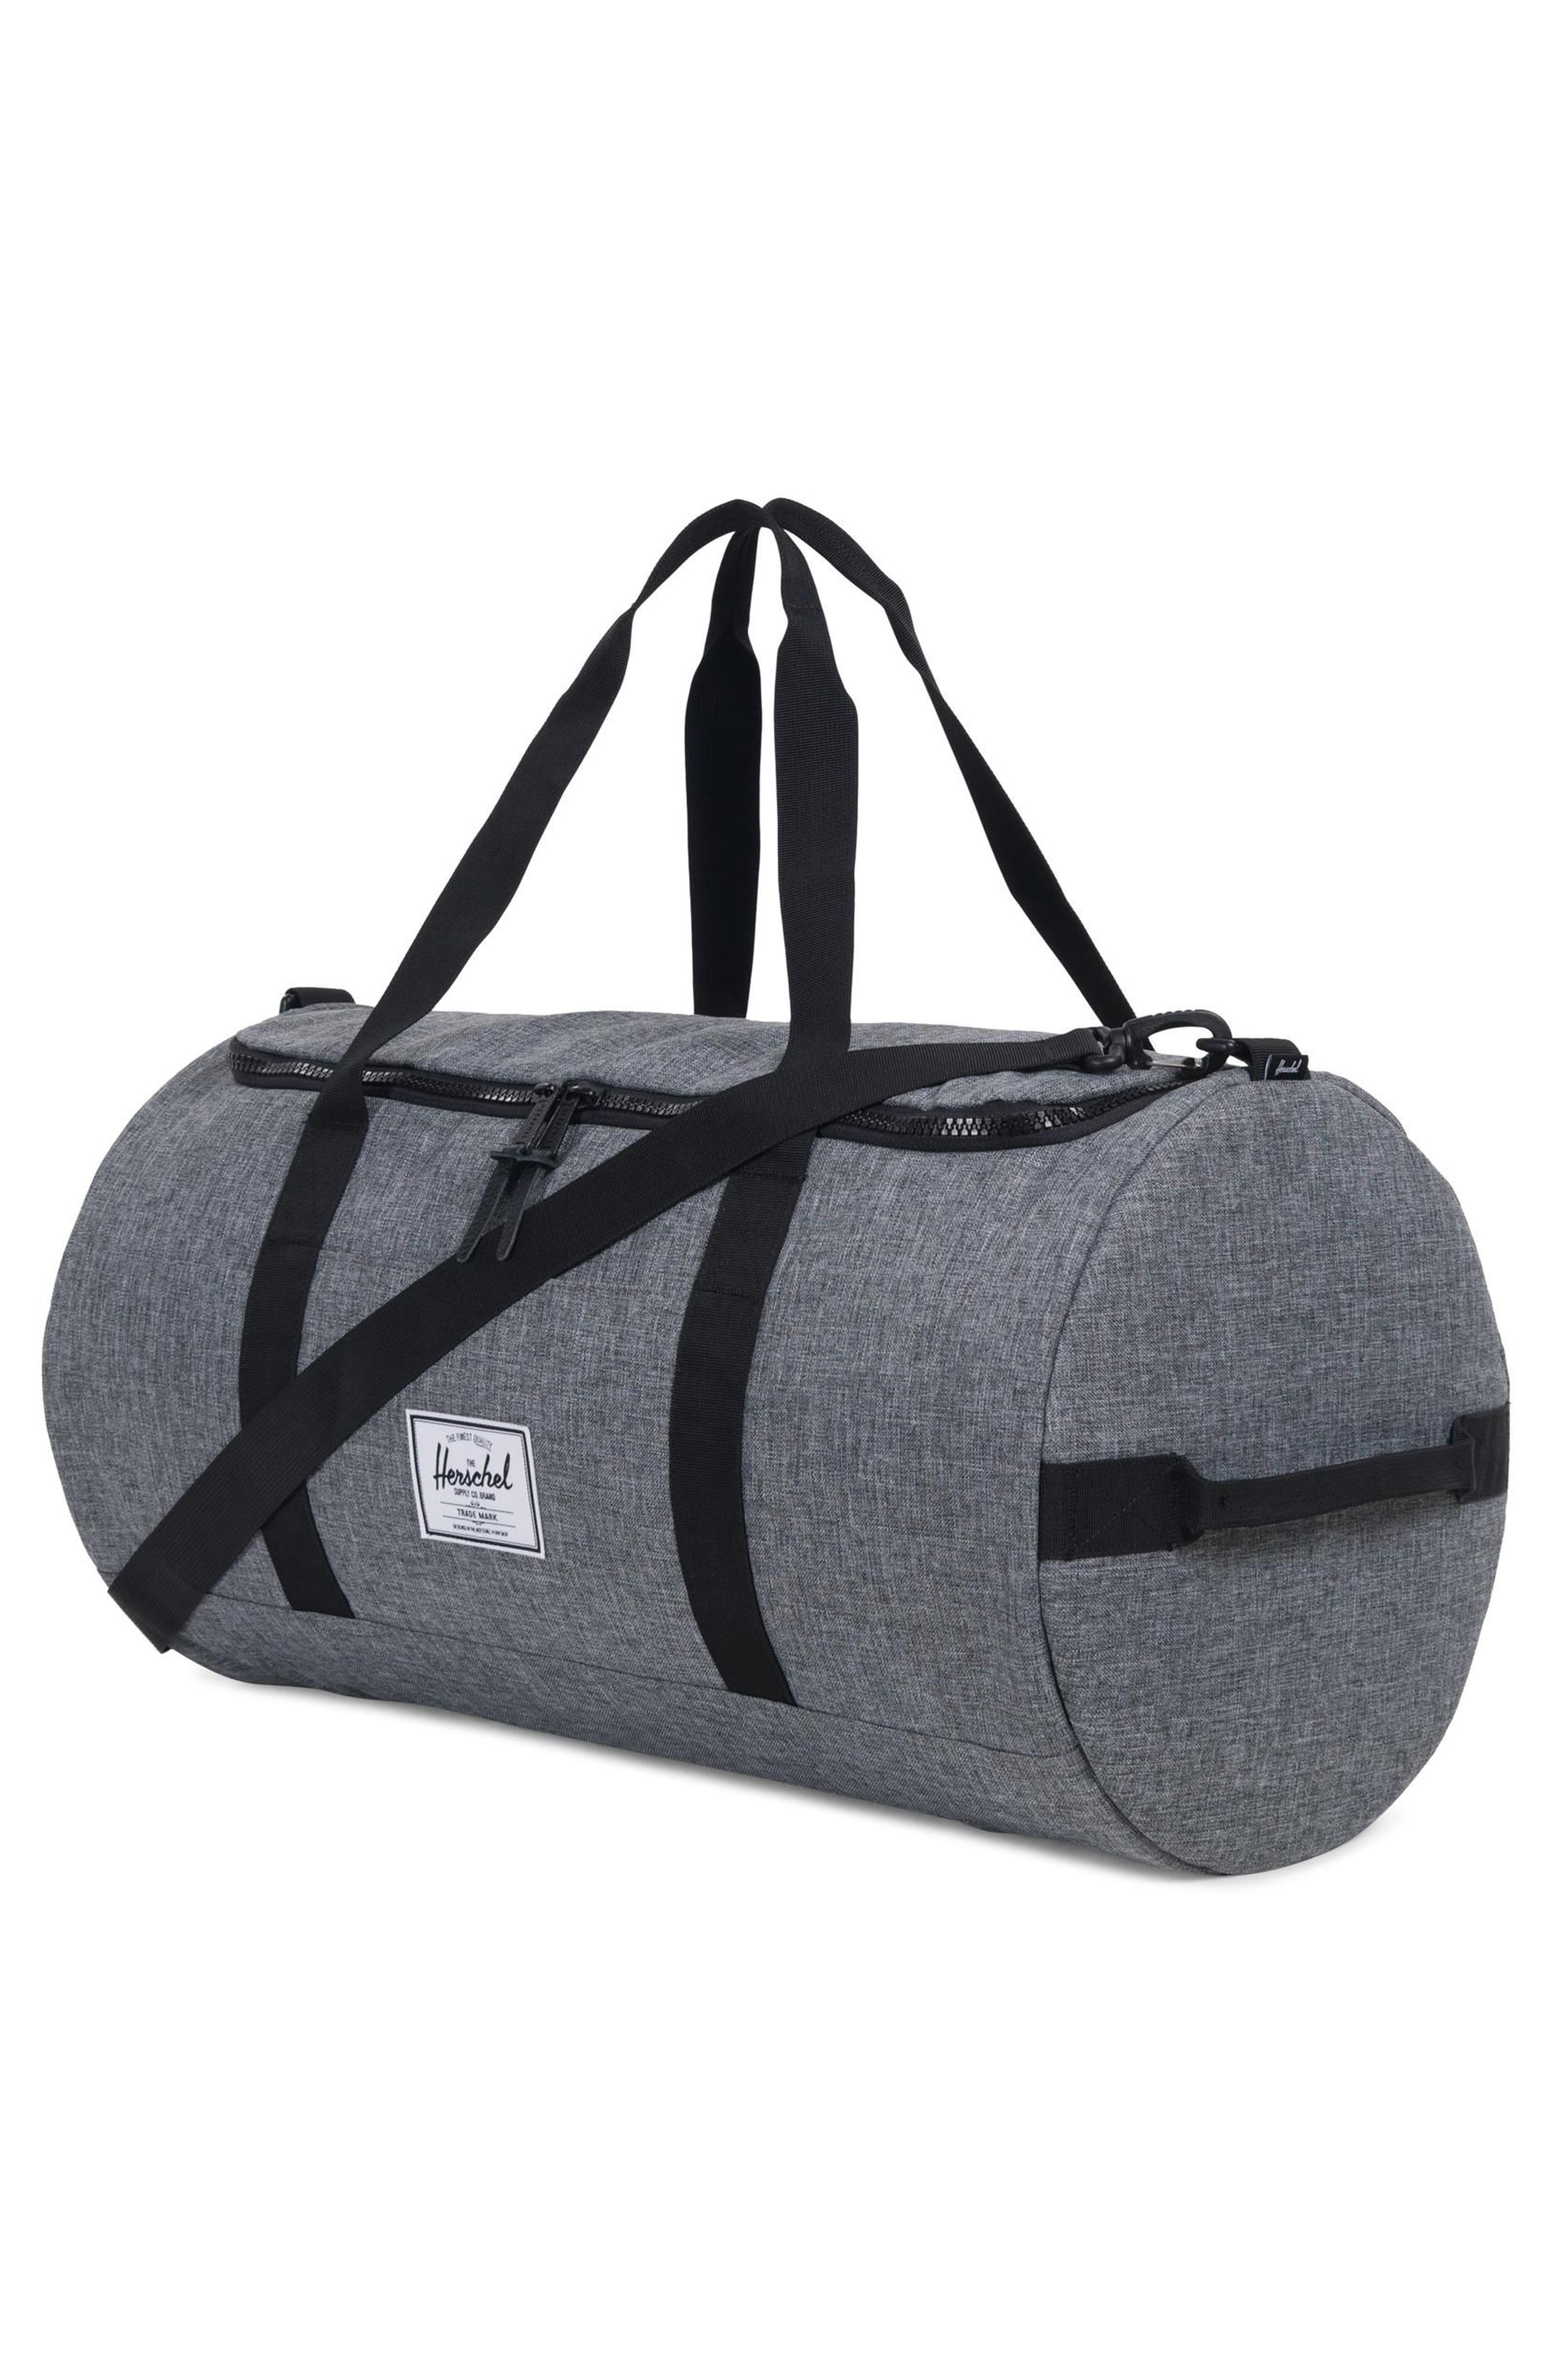 Sutton Duffel Bag,                             Alternate thumbnail 2, color,                             RAVEN CROSSHATCH